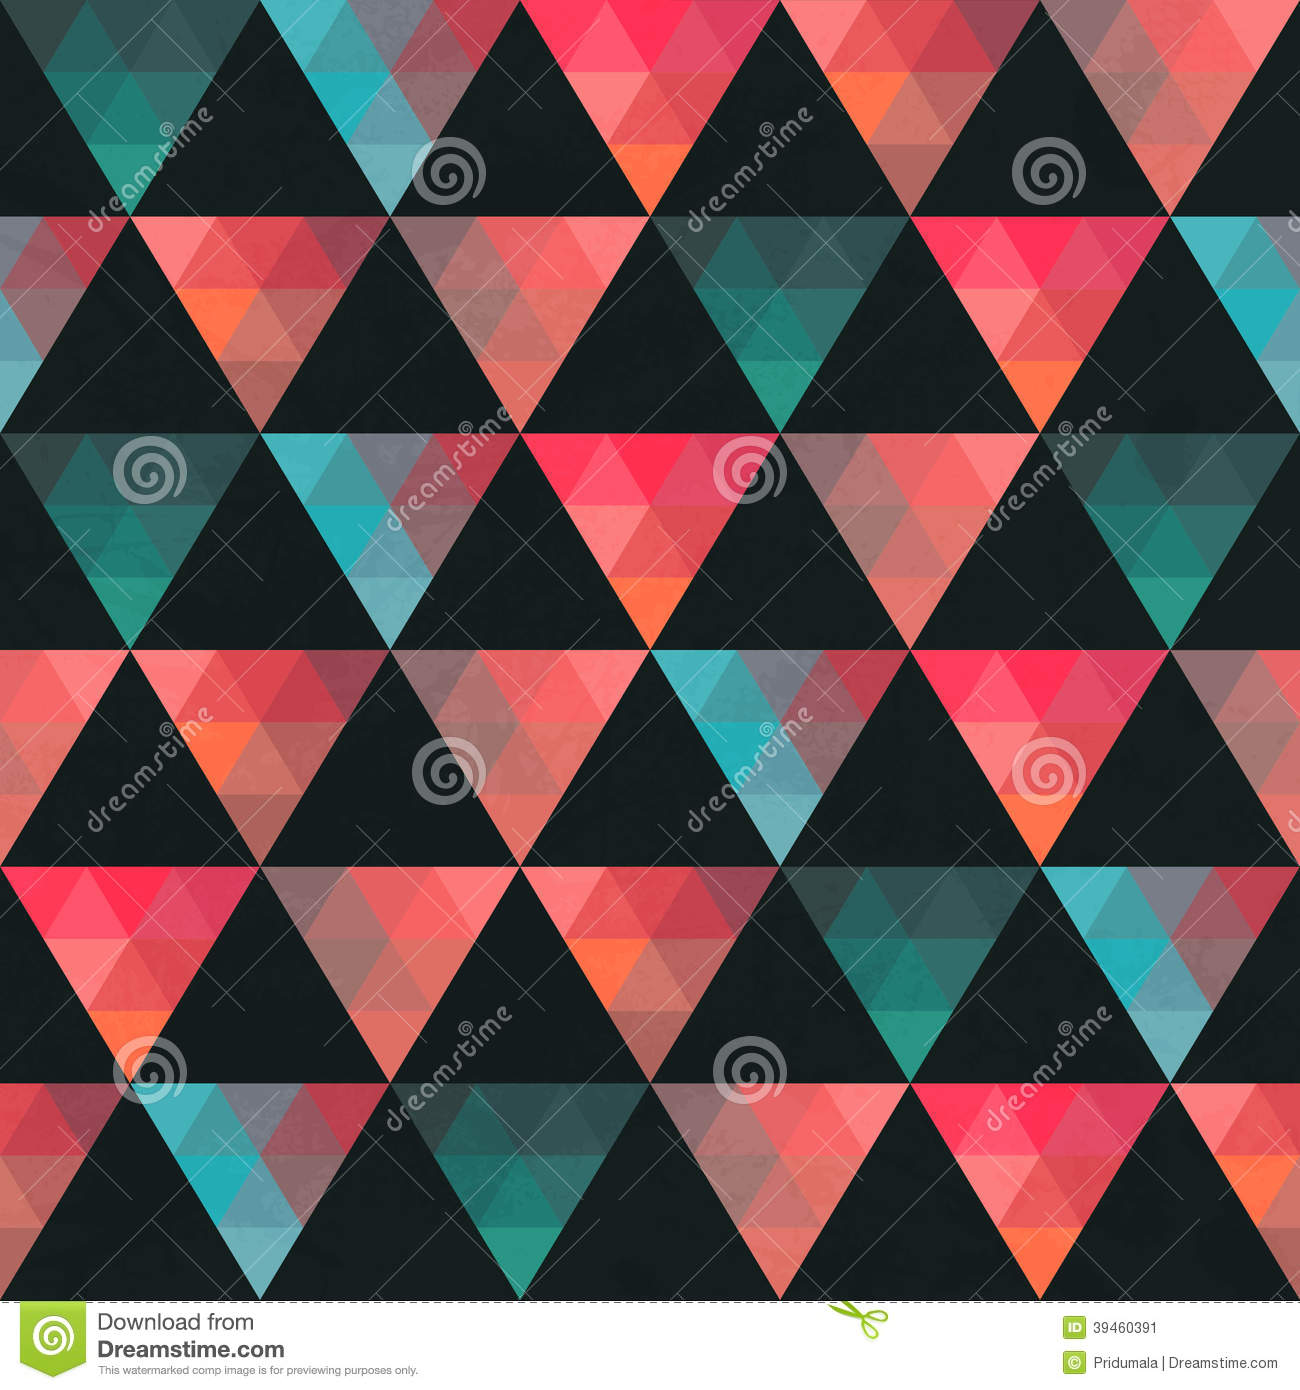 Triangles pattern of geometric shapes colorful mosaic